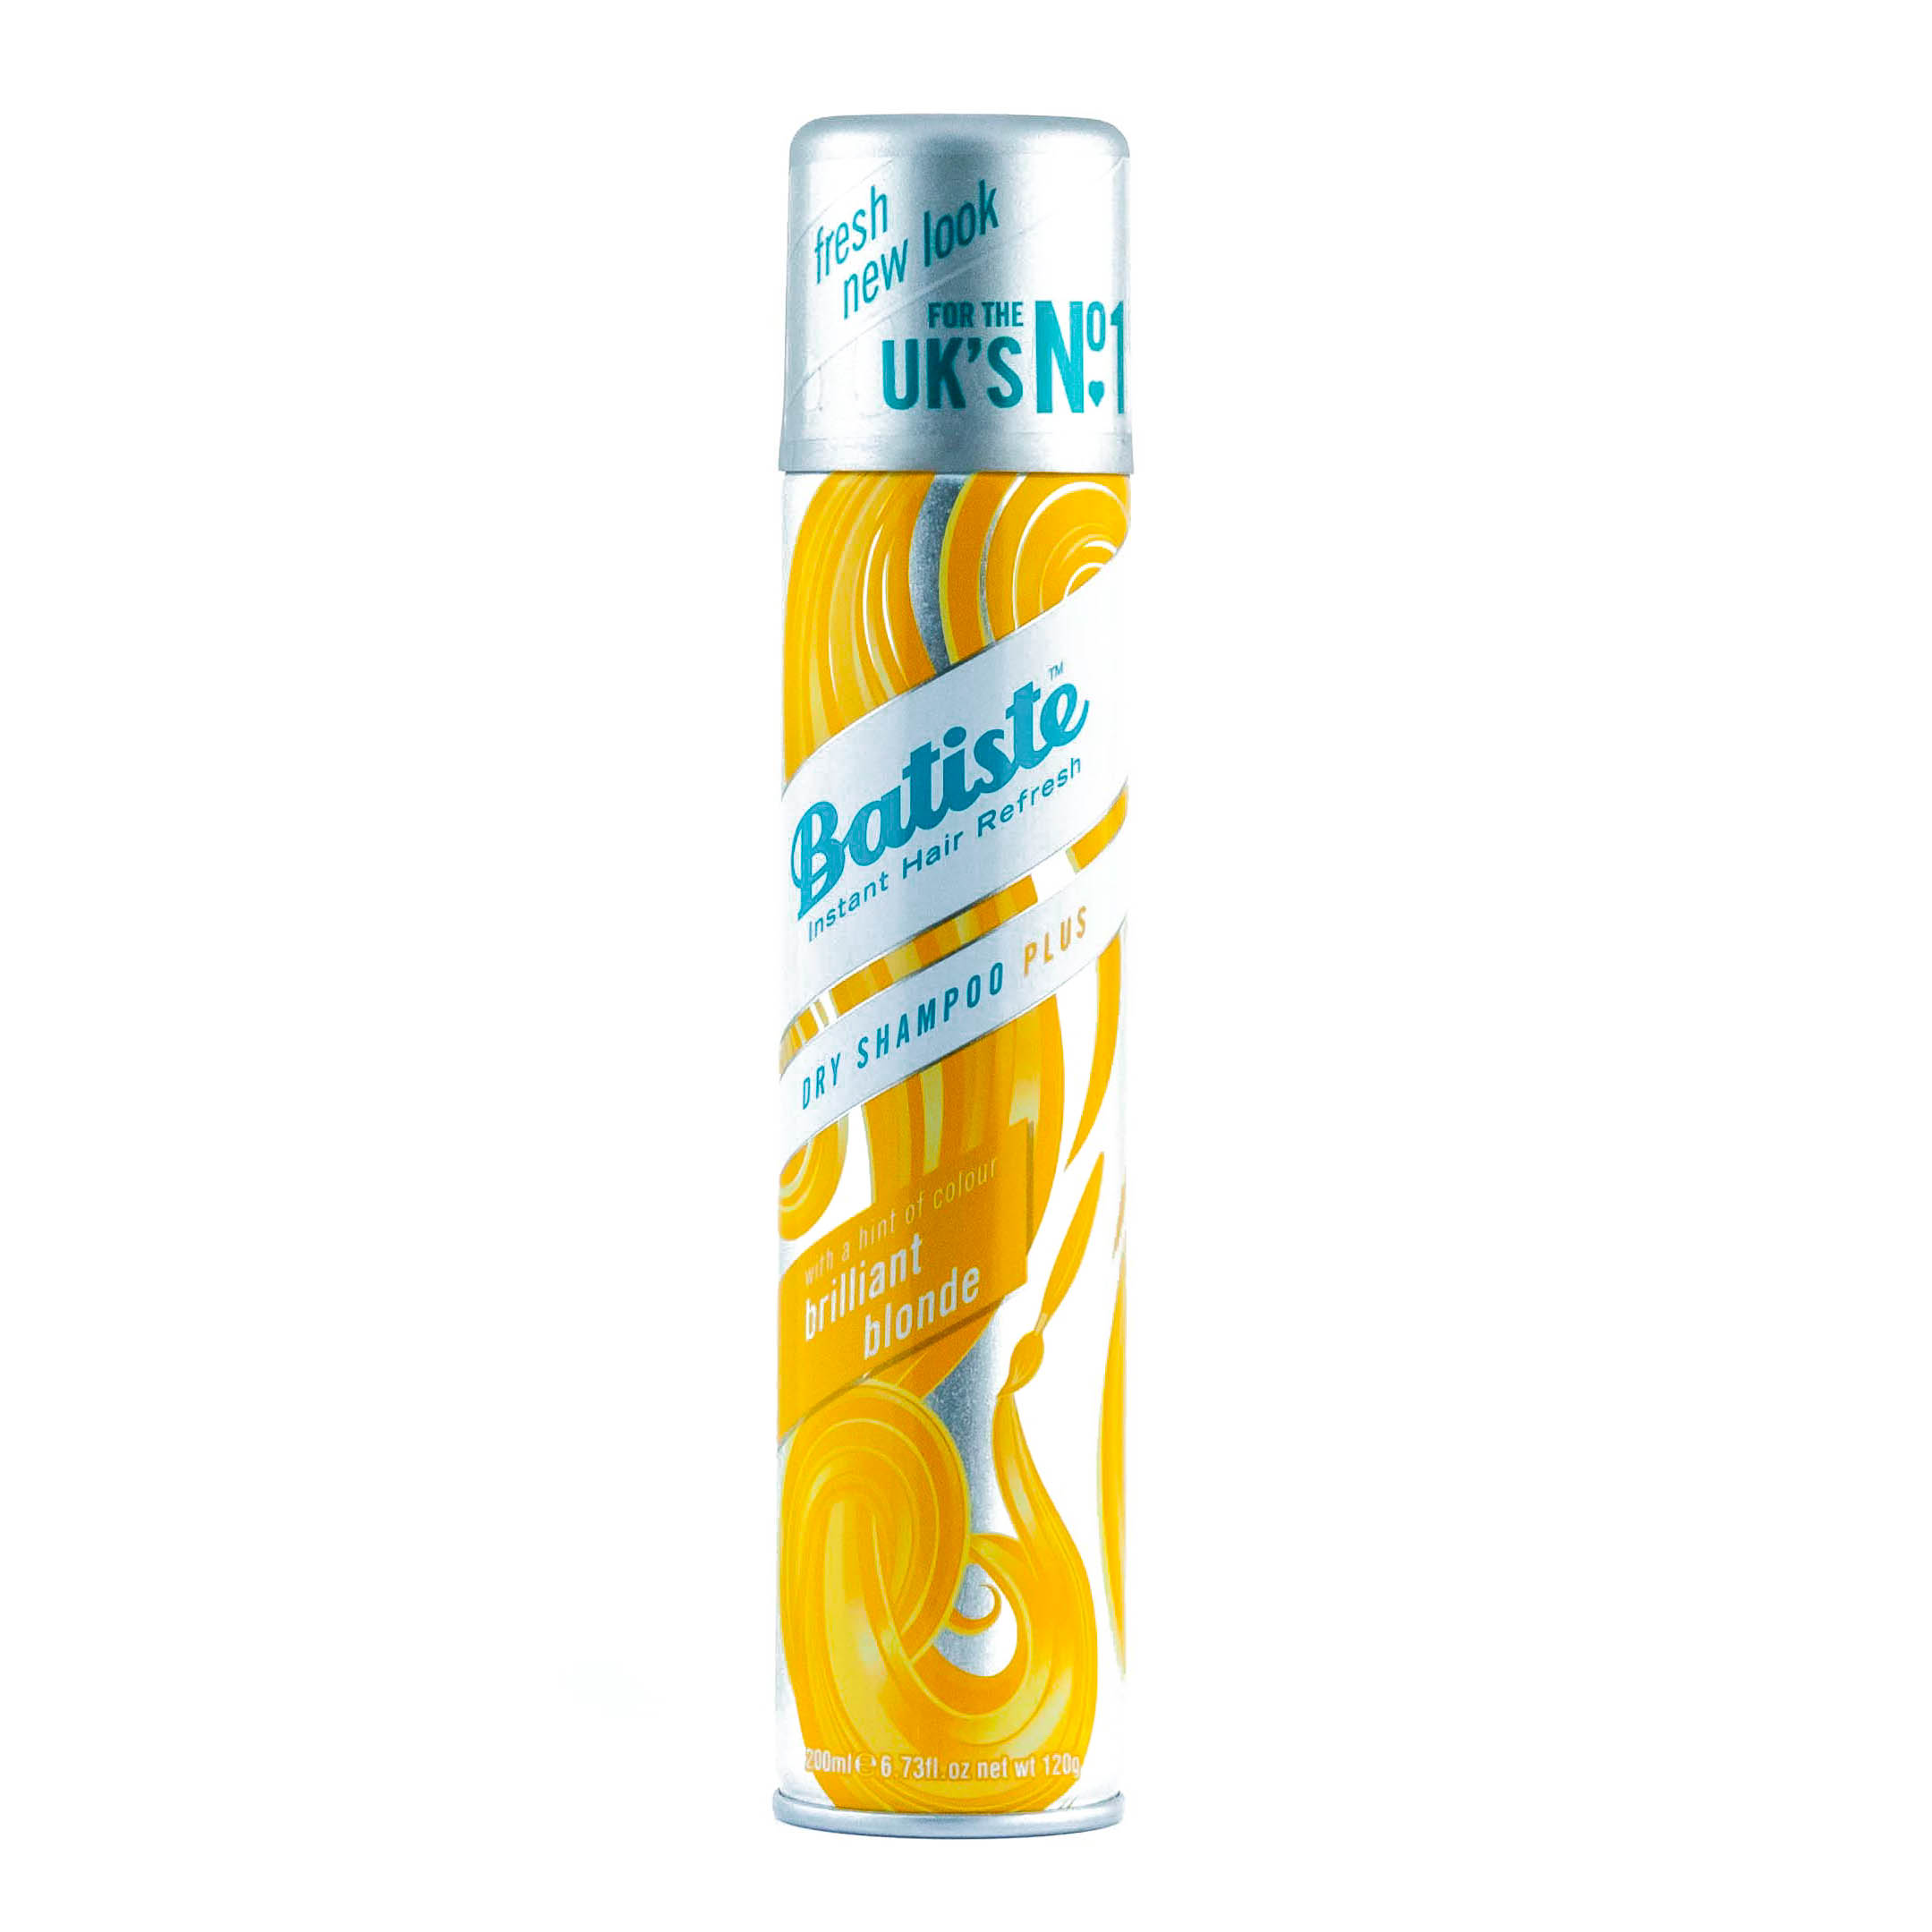 Batiste Light Brilliant Blonde Сухой шампунь 200 мл (, Dry Shampoo Plus)